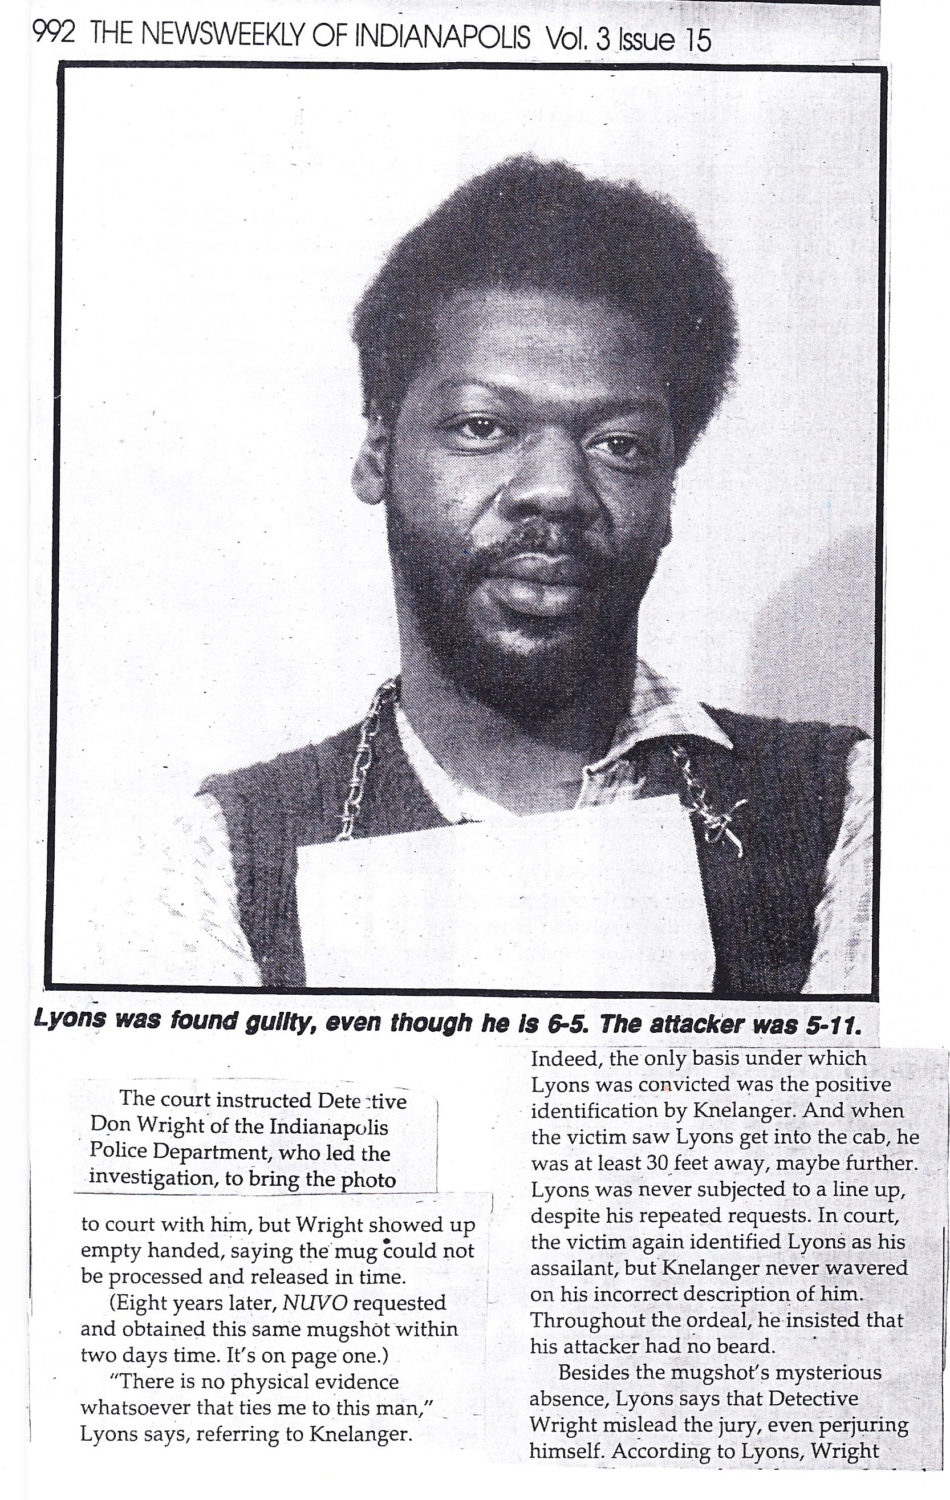 Hugh-Lyons-mugshot-article-excerpt-from-The-Newsweekly-of-Indianapolis, Lifelong fighter for prisoners' rights: Hugh Ray Lyons Jr., presente!, Behind Enemy Lines